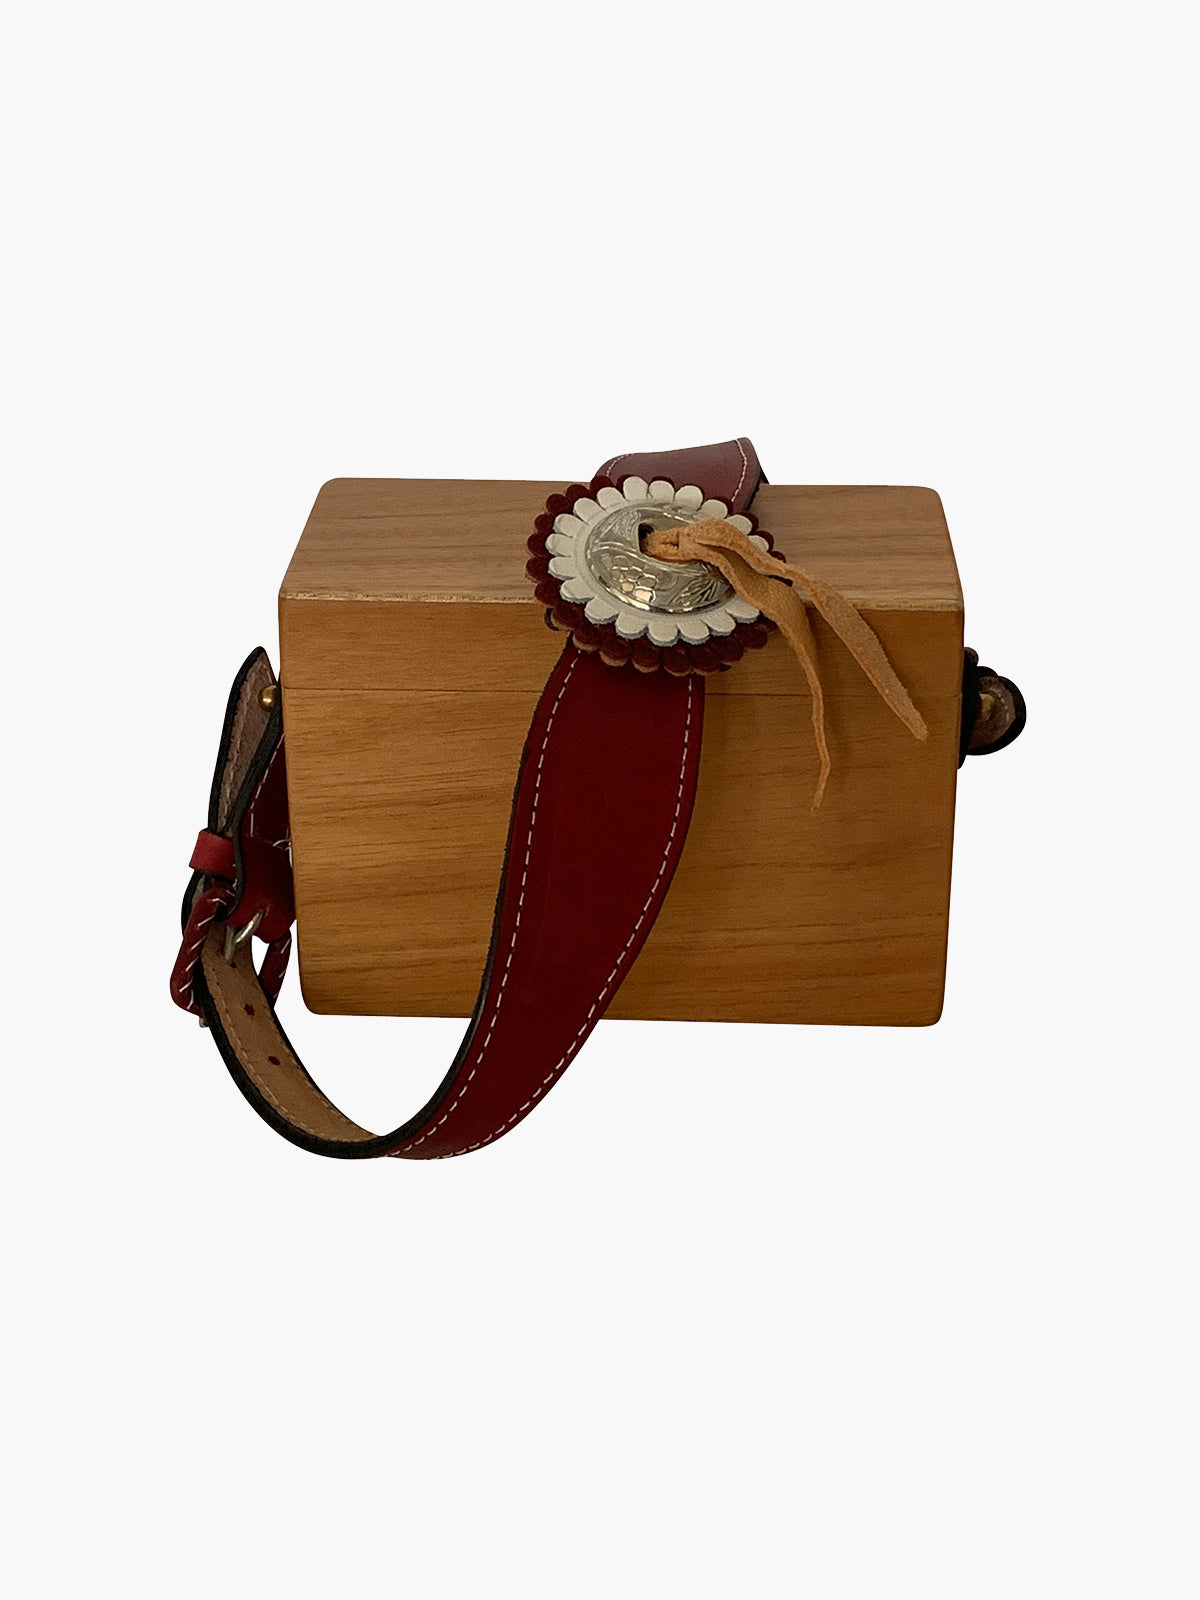 Ladrillo Box Bag | Cedar Wood